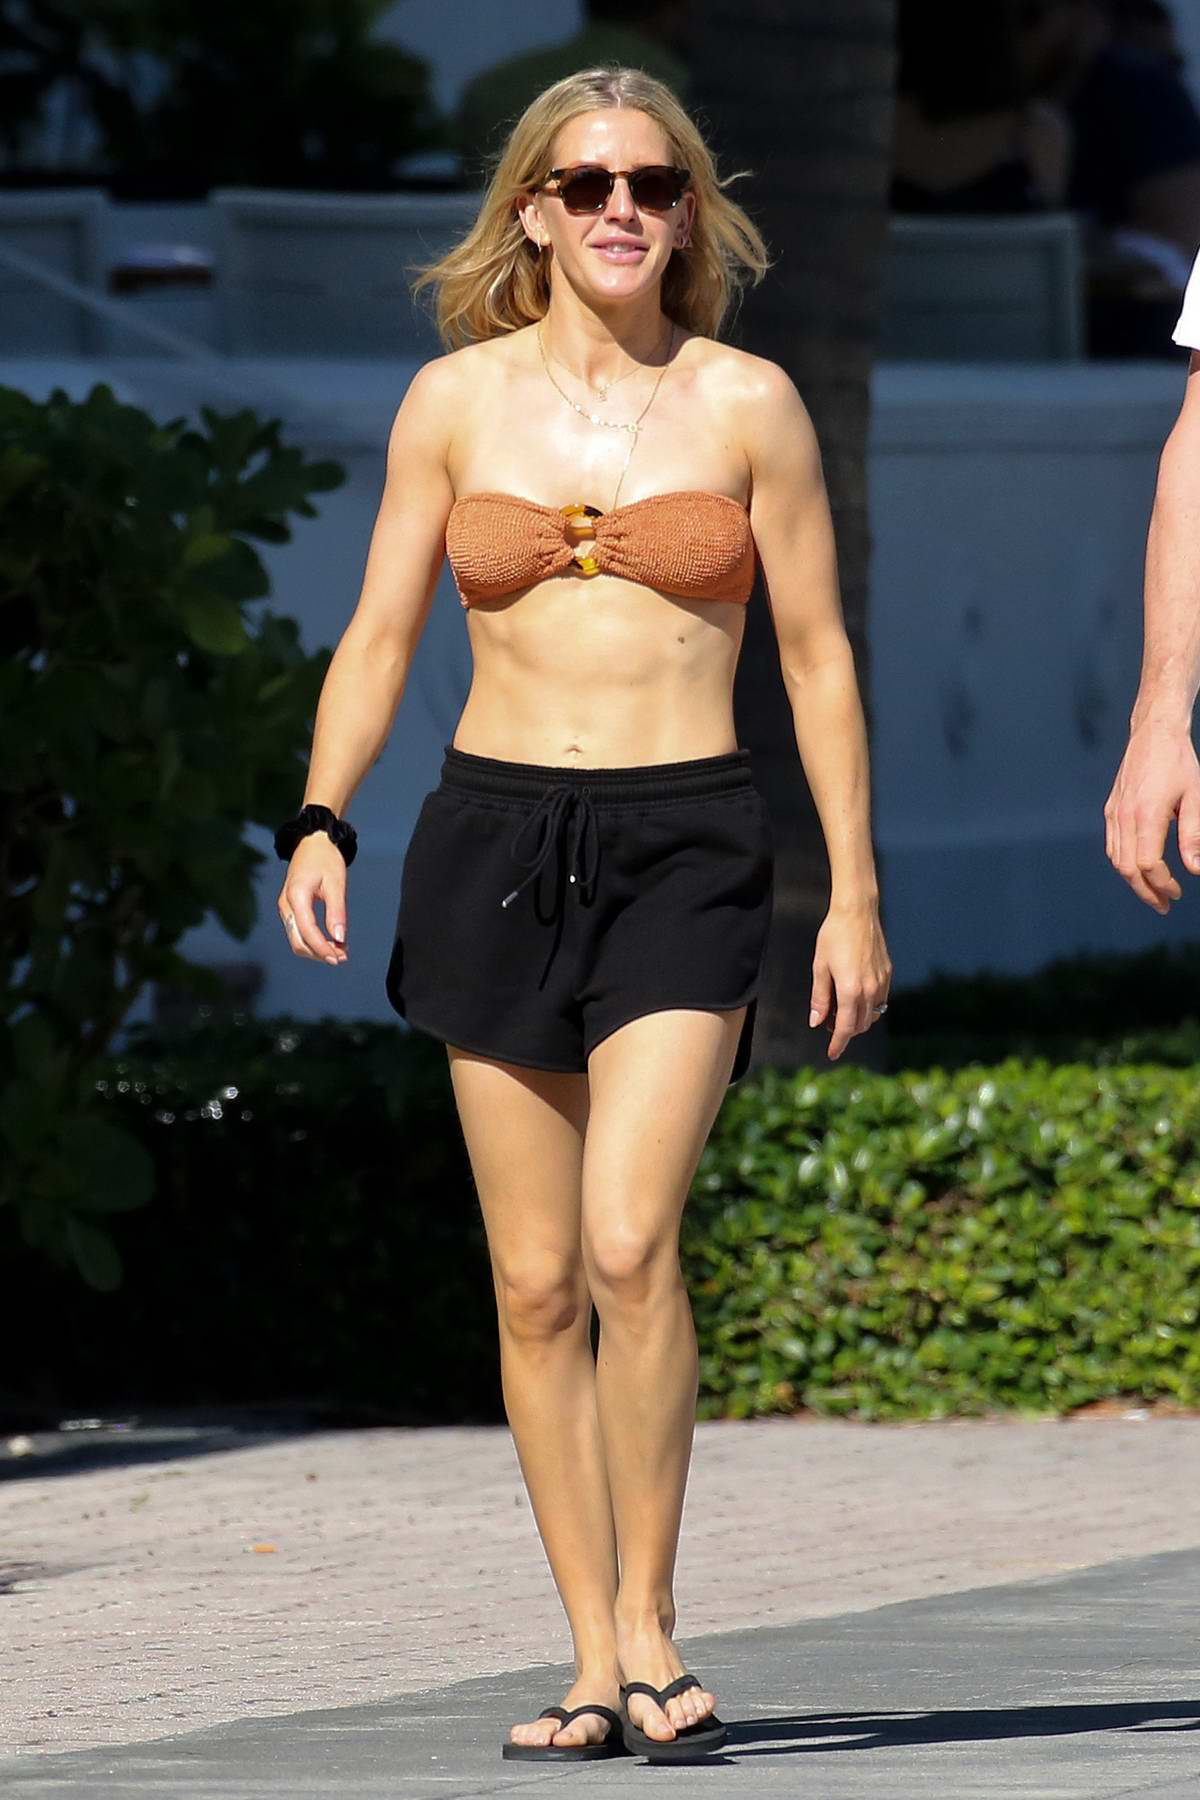 Ellie Goulding wears a bandeau bikini top and shorts as she takes a walk with husband Casper Jopling in Miami, Florida